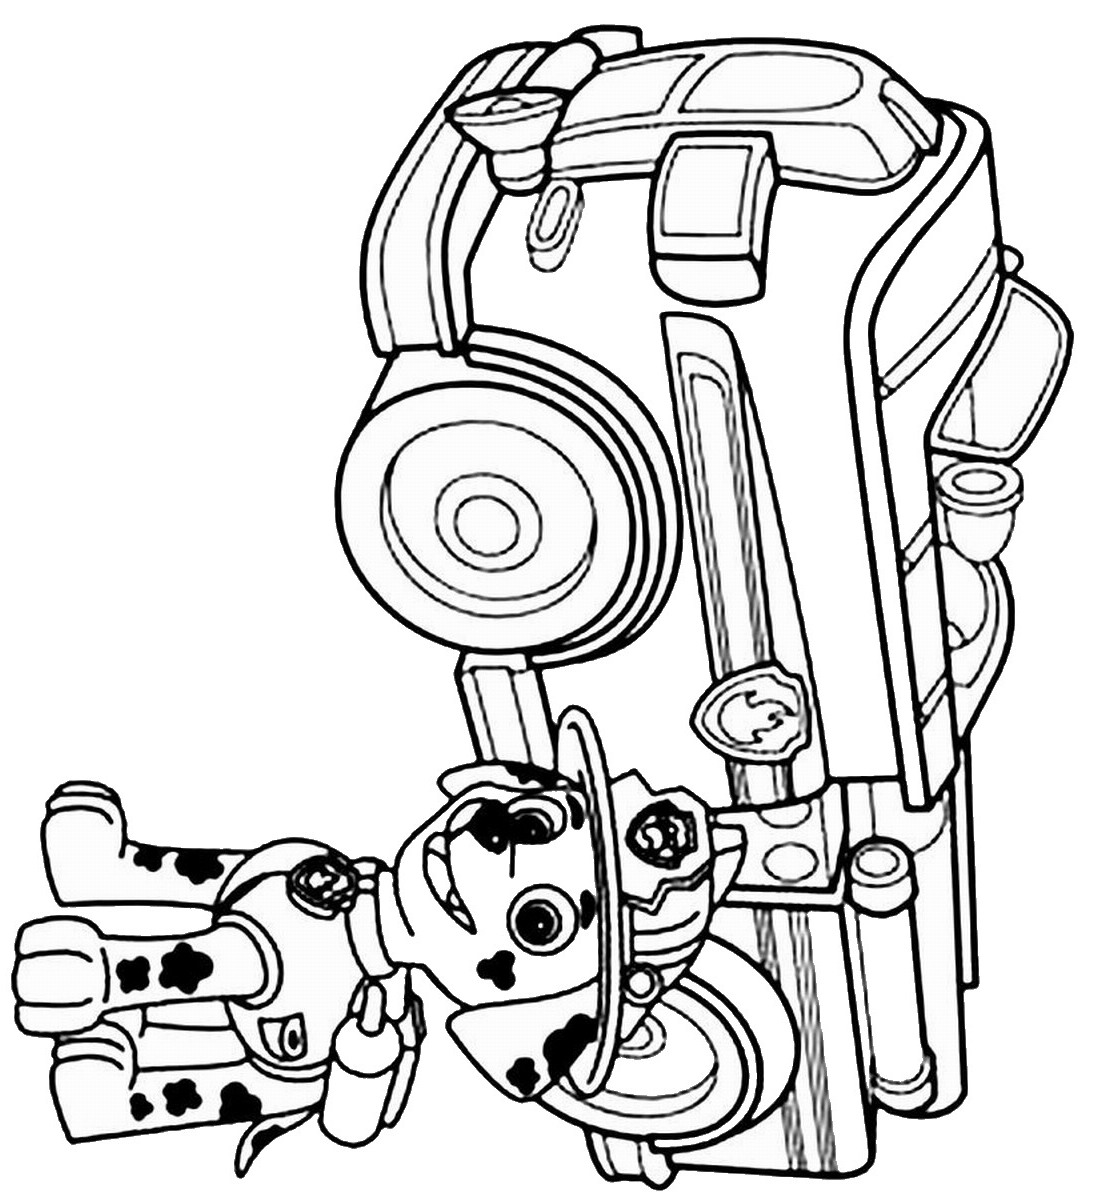 Paw Patrol Coloring Pages : Free coloring pages of paw patrol colring